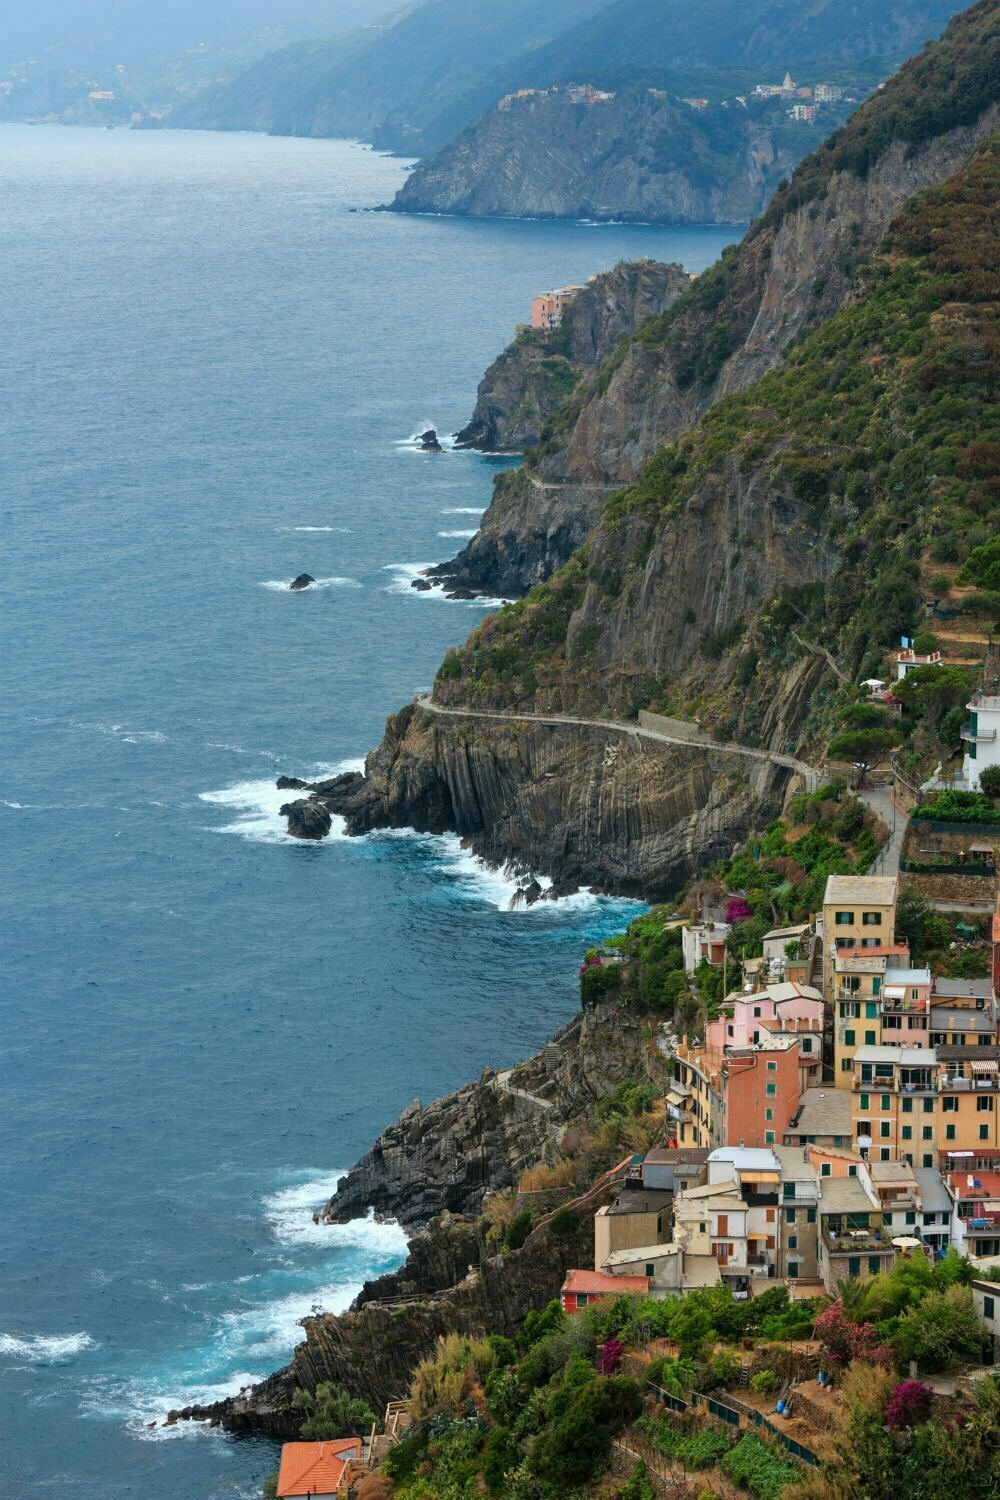 The Via dell'Amore Path of Love on the Blue Trail Hike in Cinque Terre